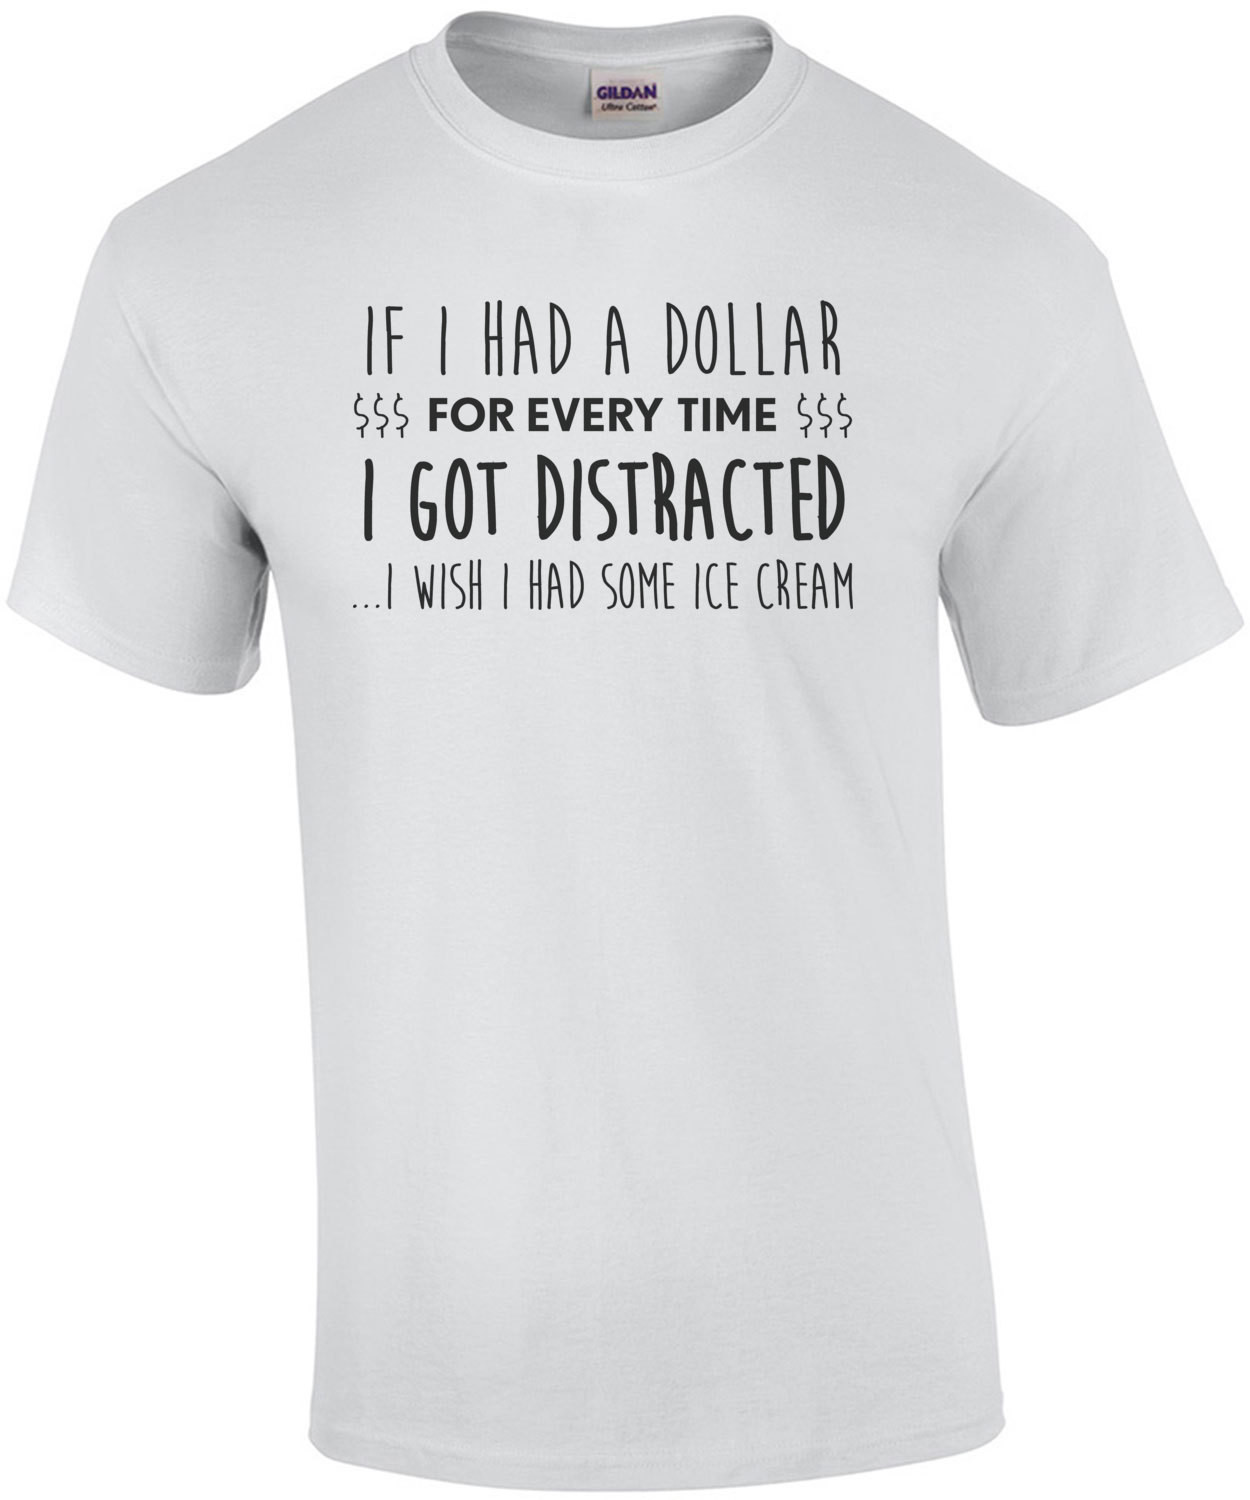 If I had a dollar for every time I got distracted... I wish I had some ice cream - ADD T-Shirt